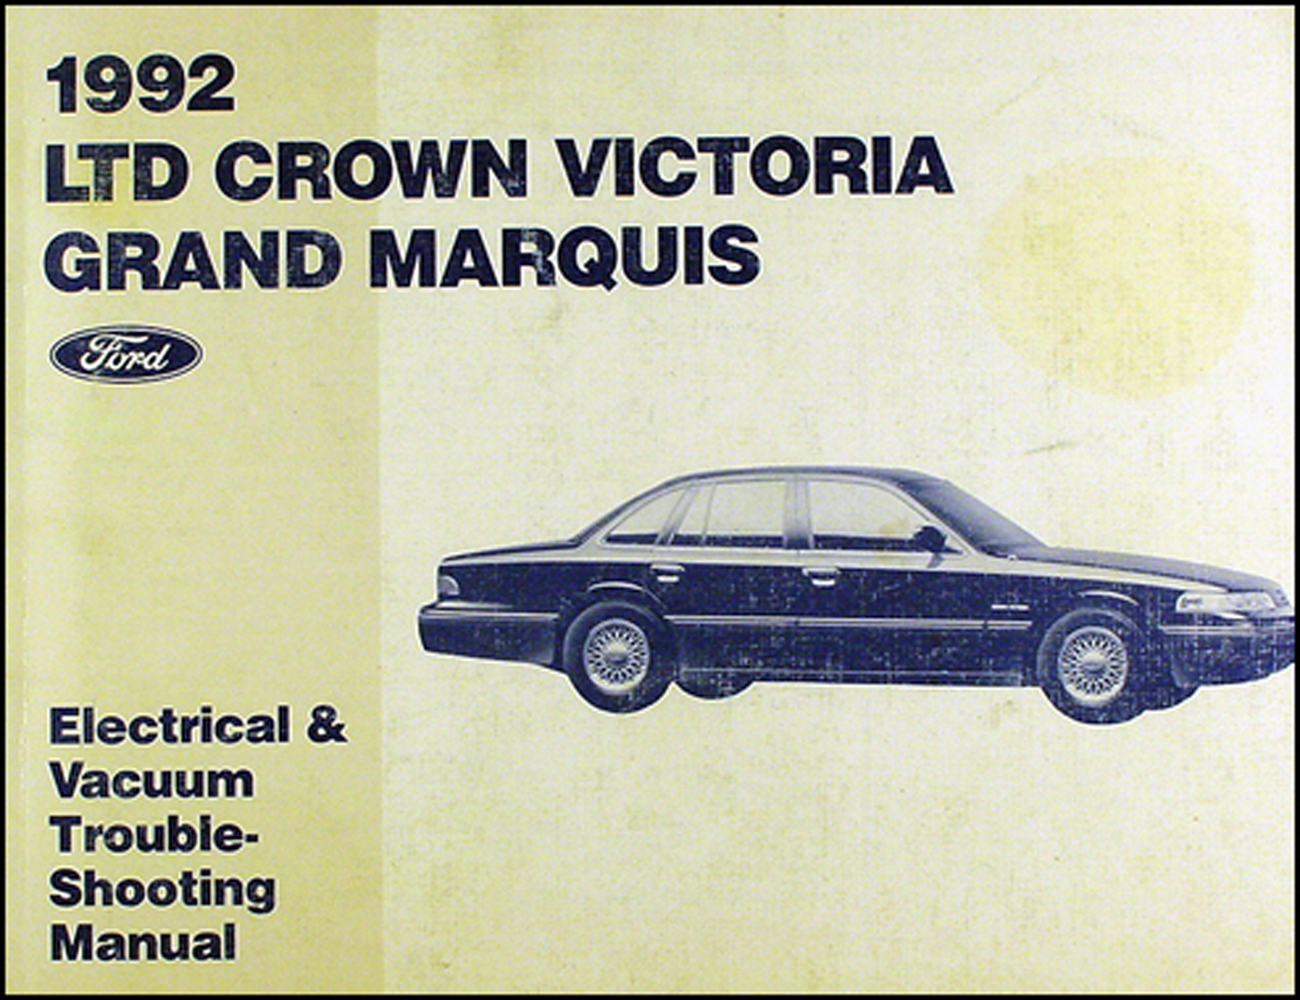 1992 Ford Crown Victoria Mercury Grand Marquis Electrical Troubleshooting Manual